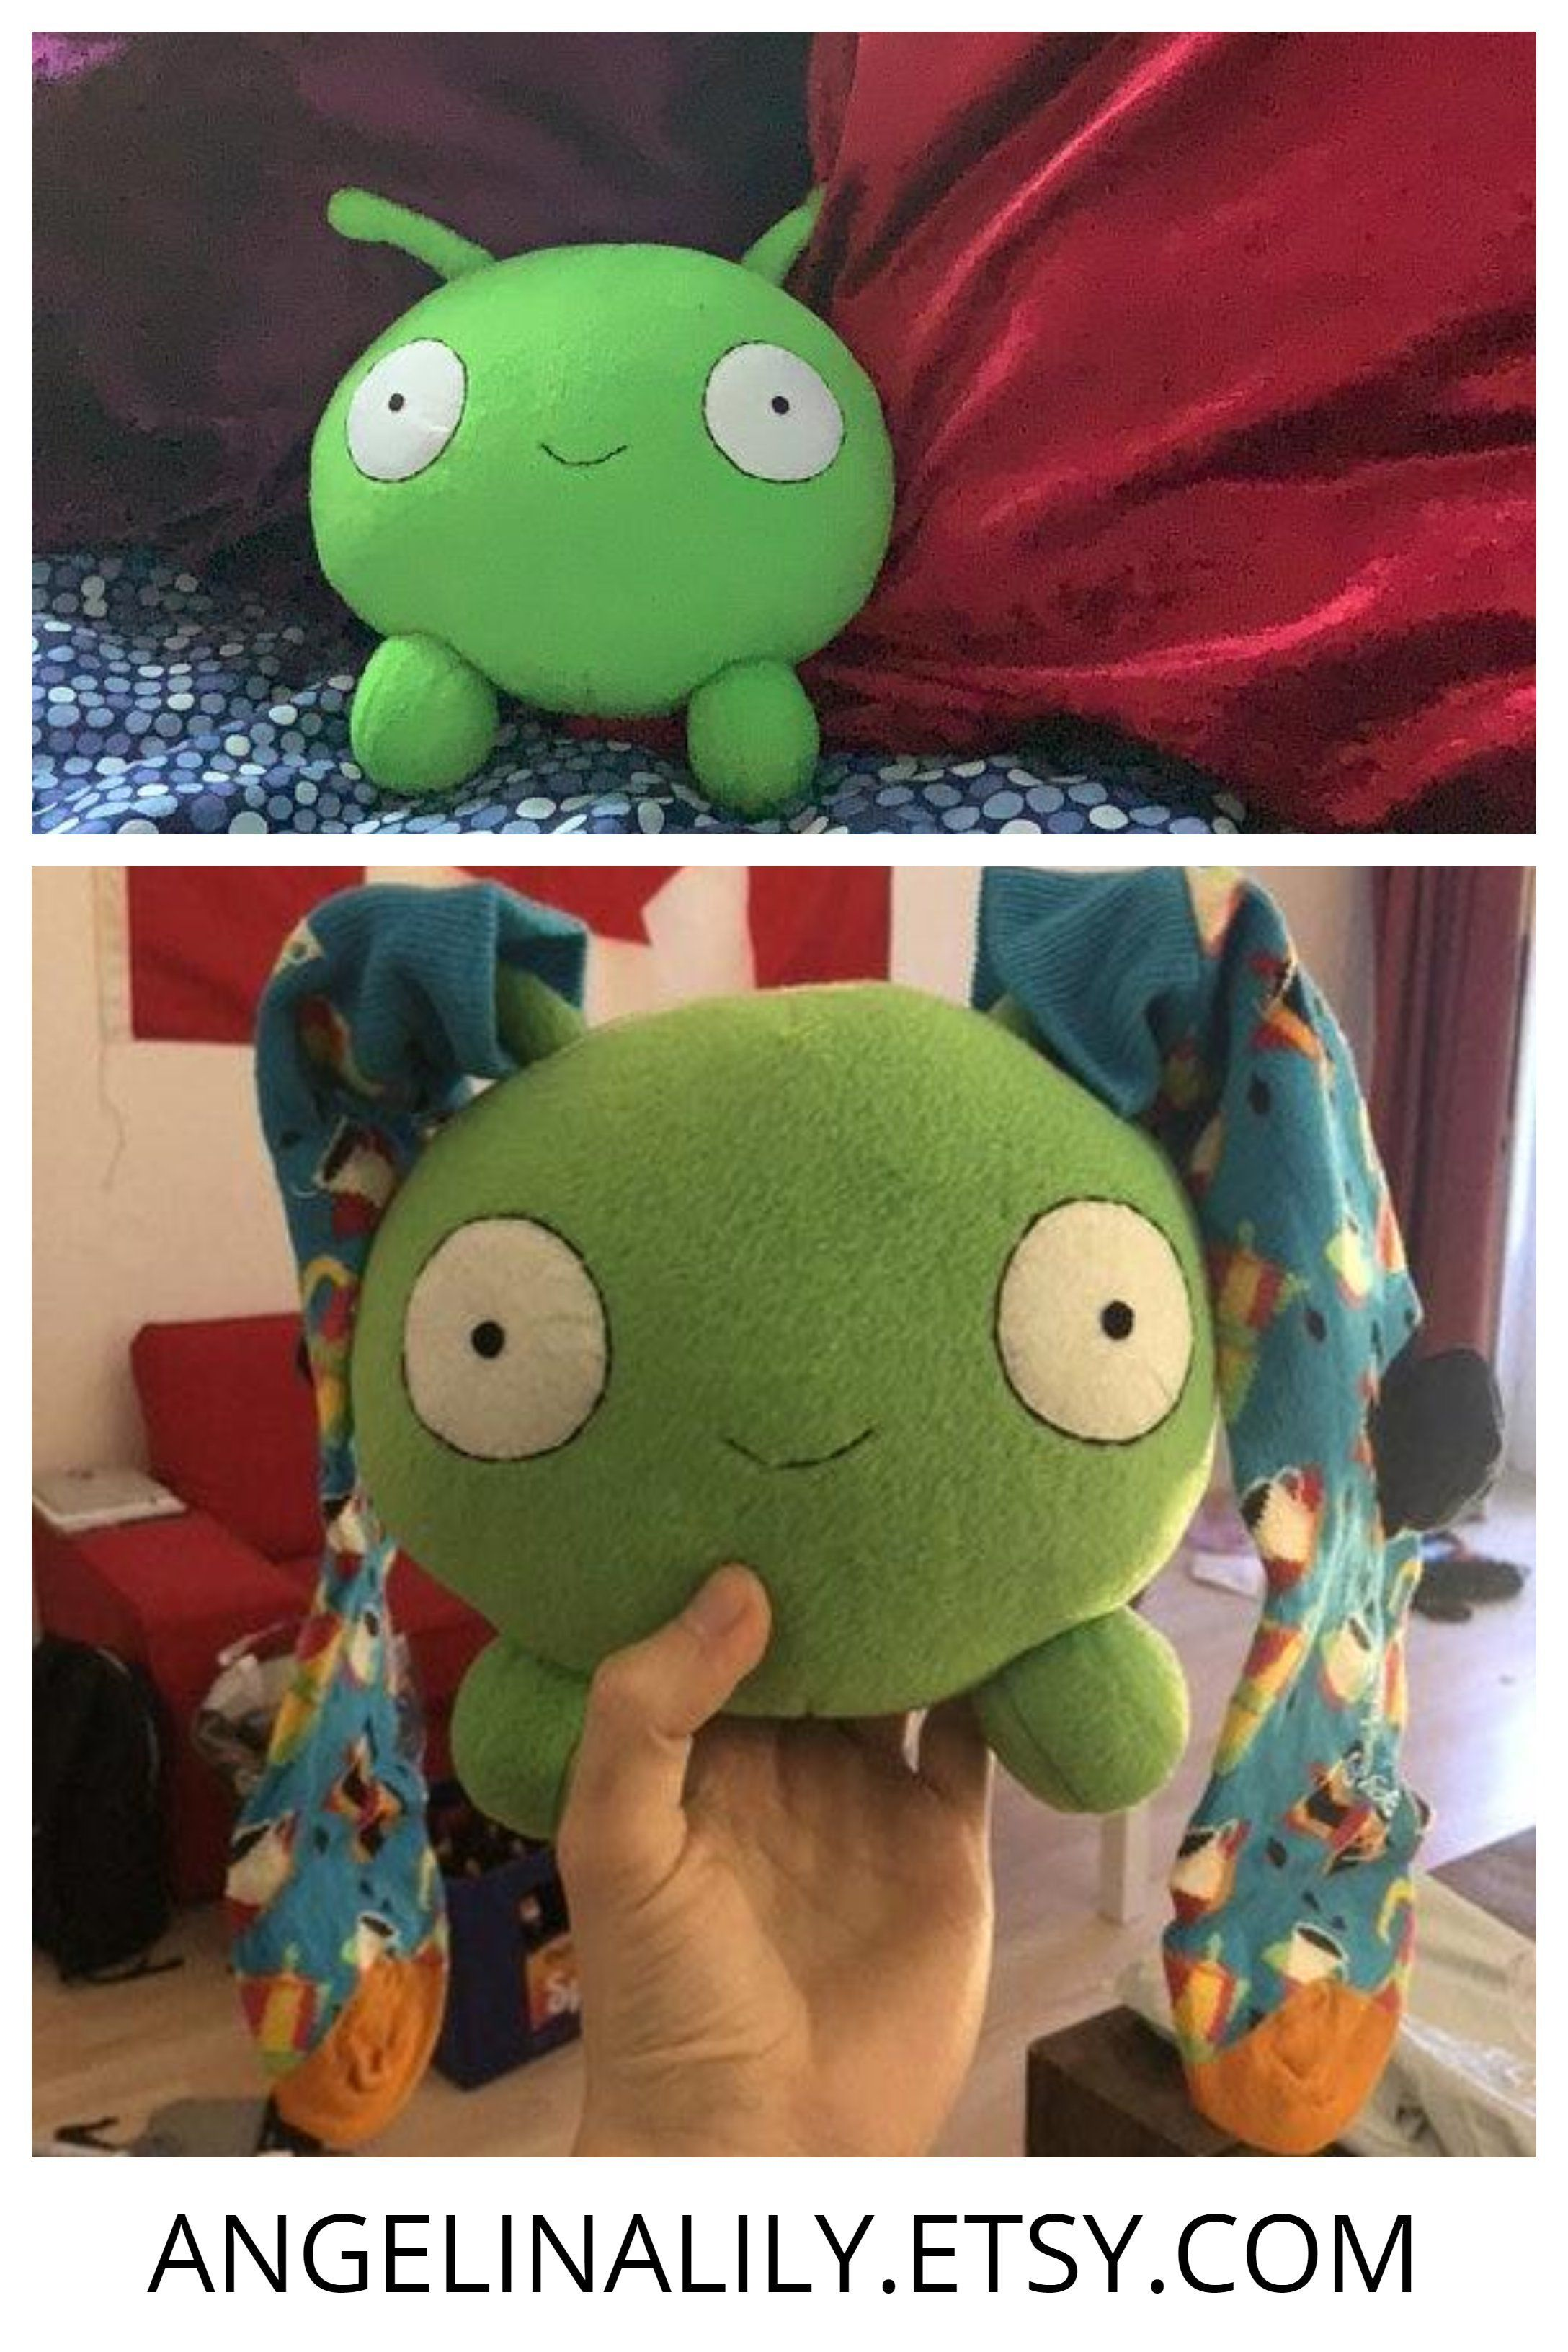 Mooncake Green Alien handmade plush в 2020 г